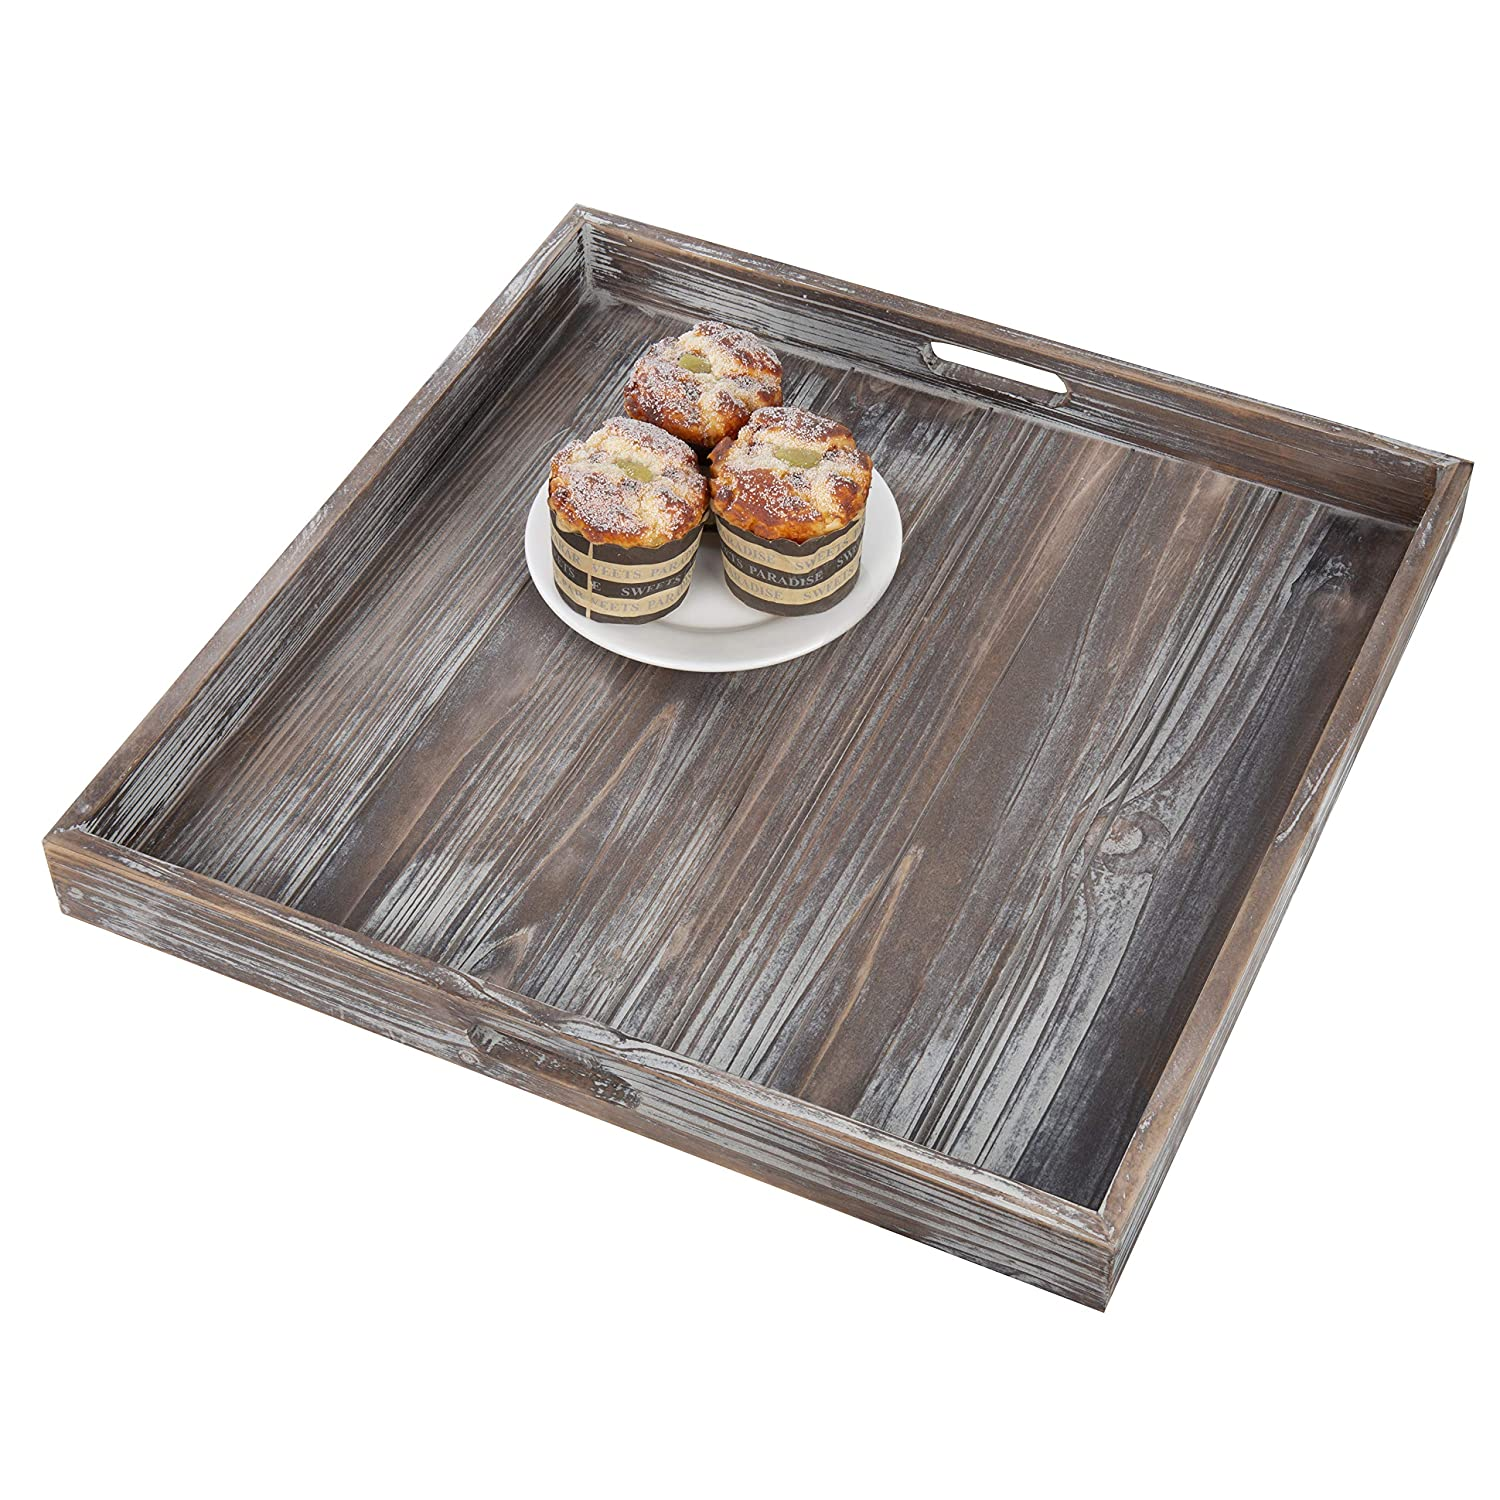 MyGift 19-Inch Square Rustic Torched Wood Ottoman Tray